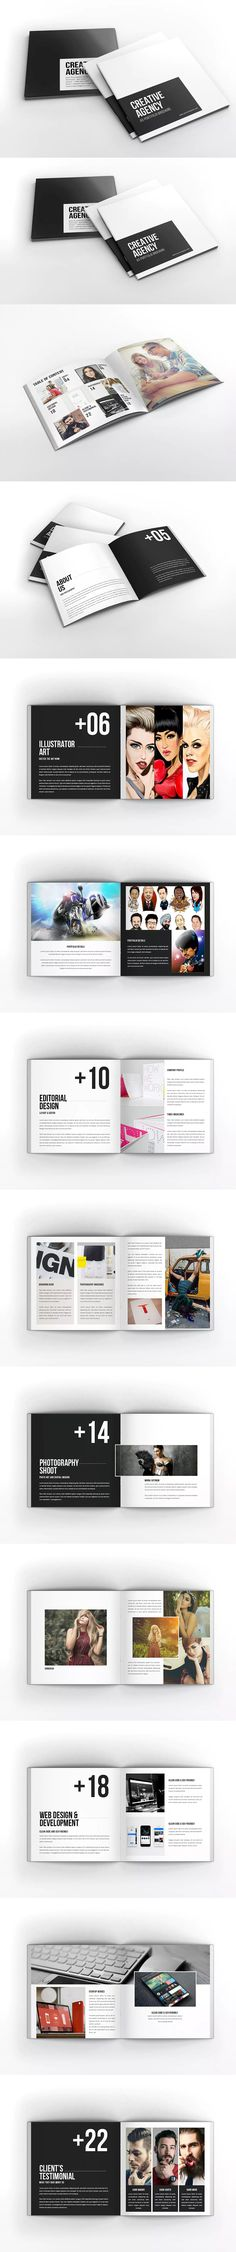 Creative Agency - Square Portfolio Brochure Template InDesign INDD